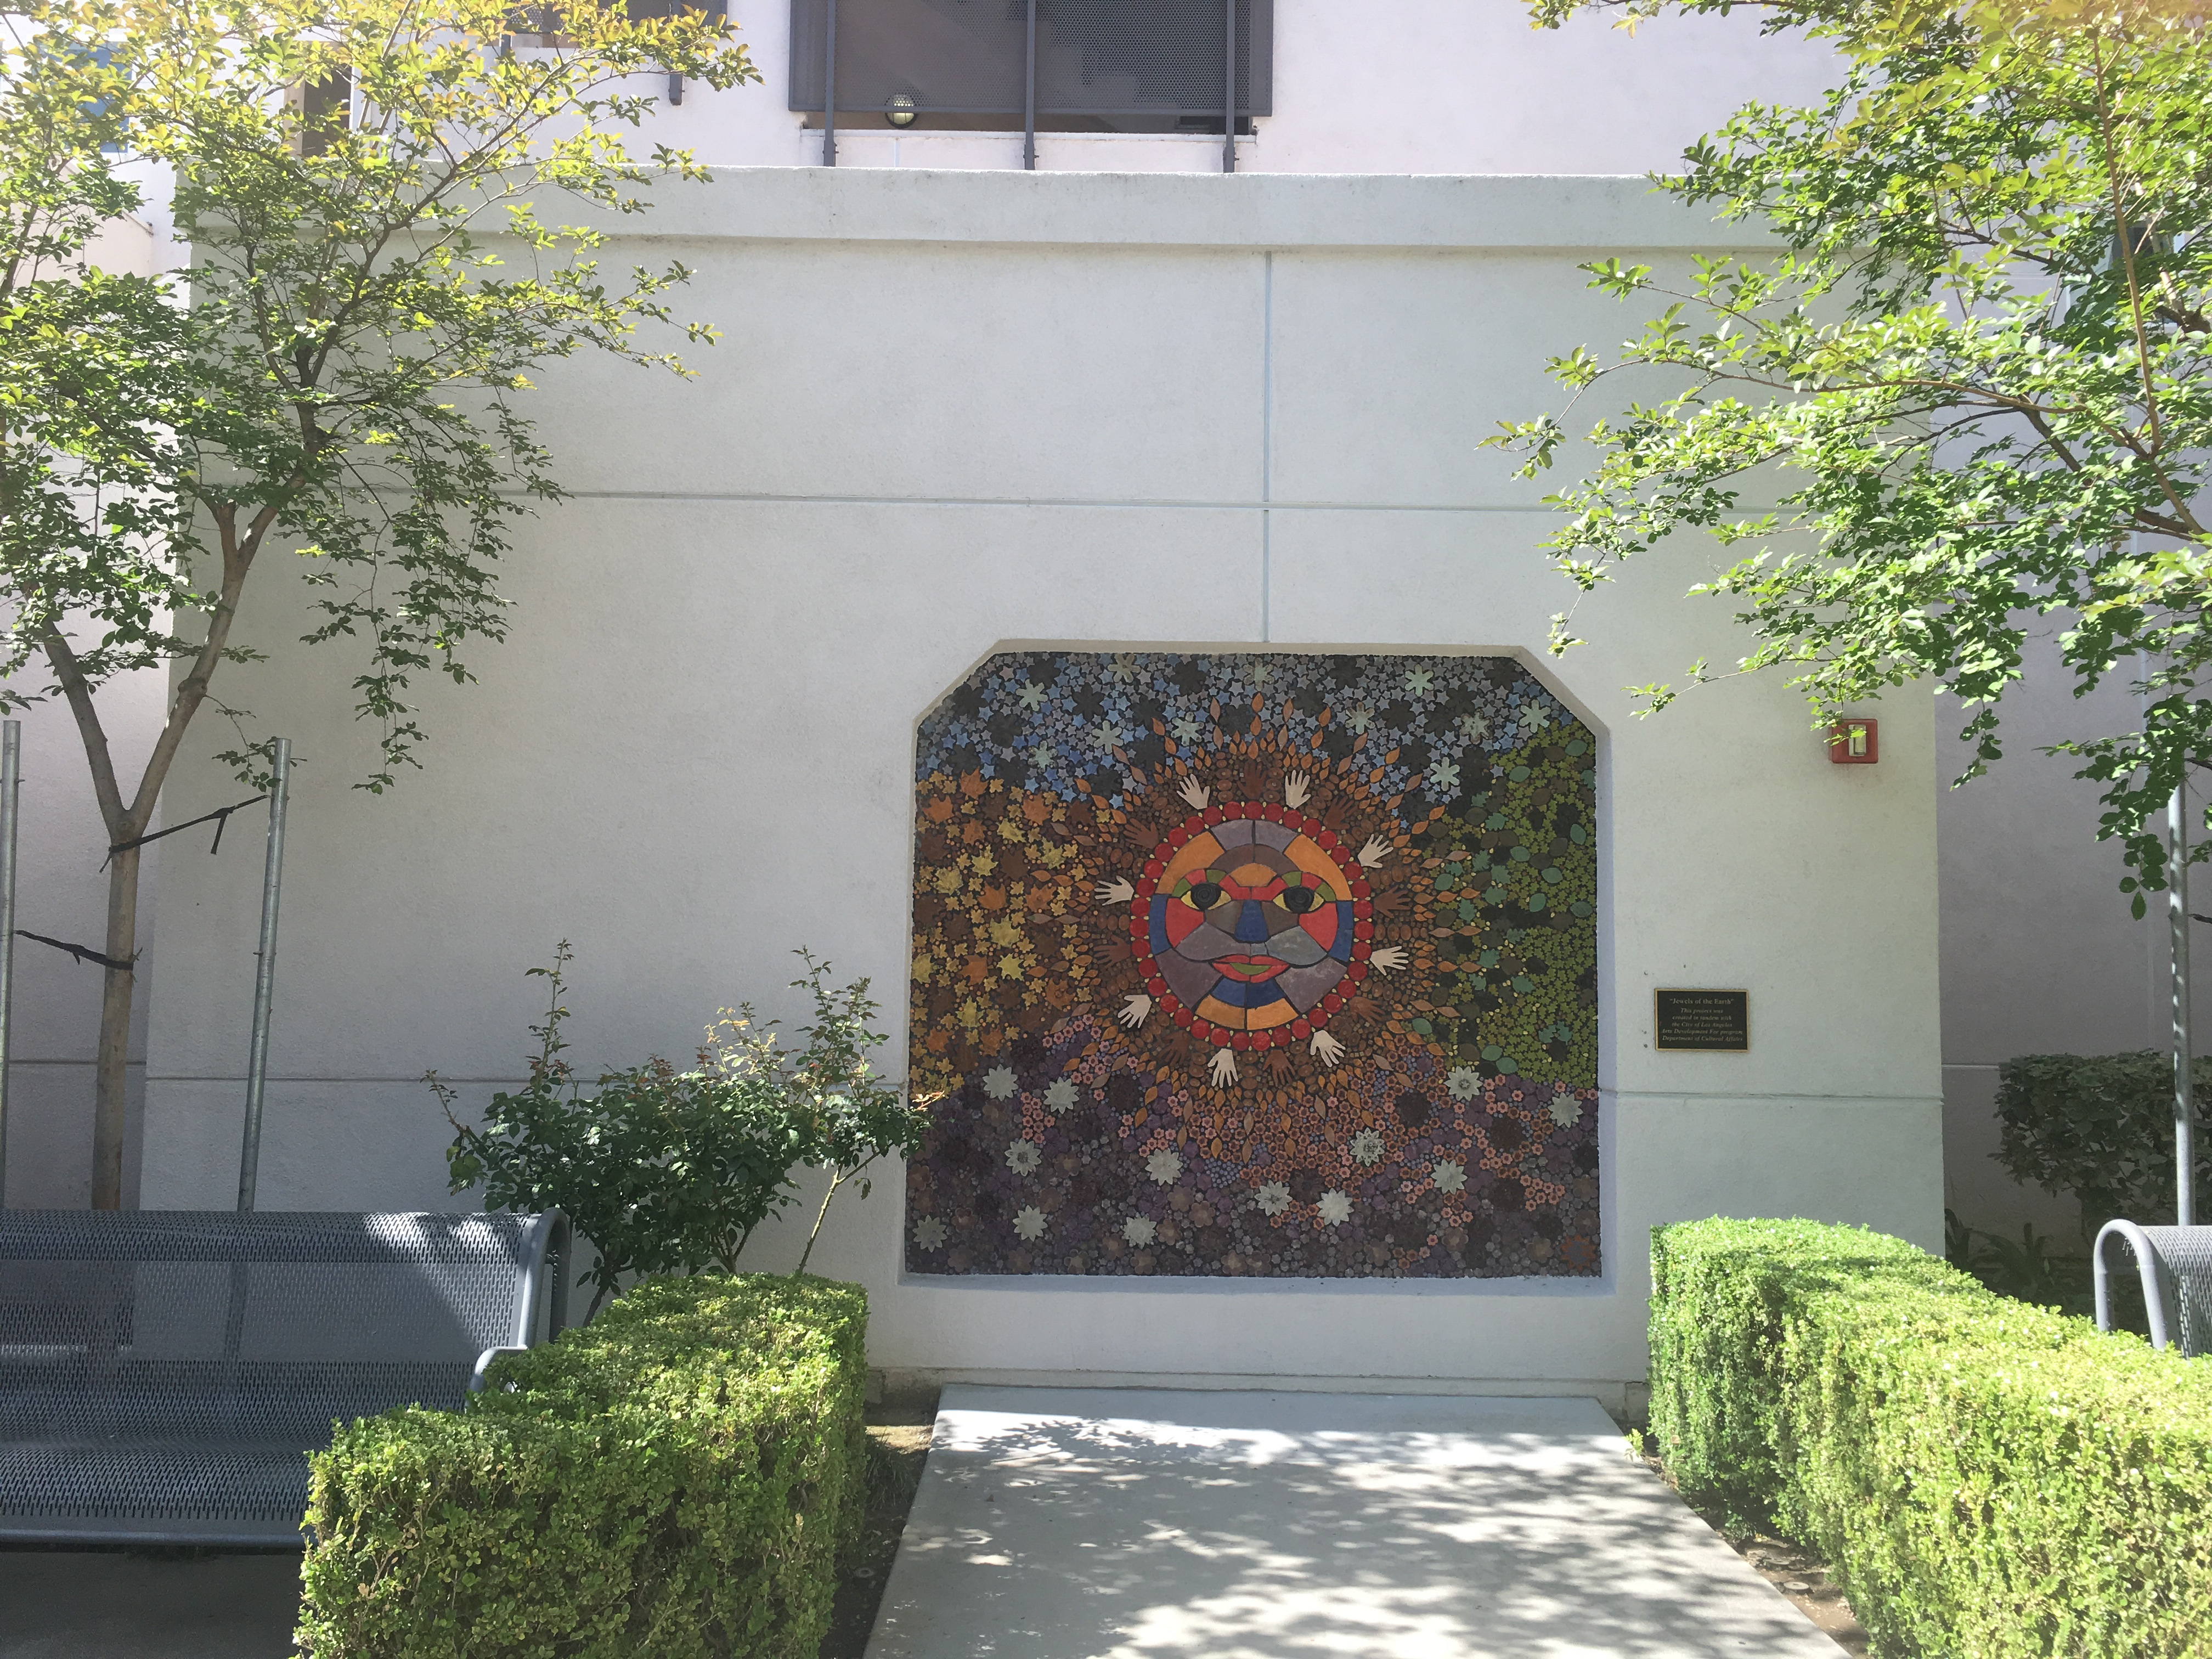 Front view of the court yard, a beautiful colorful mosaic art on the wall, well trimmed bushes on each side, gray iron mesh benches on each side.